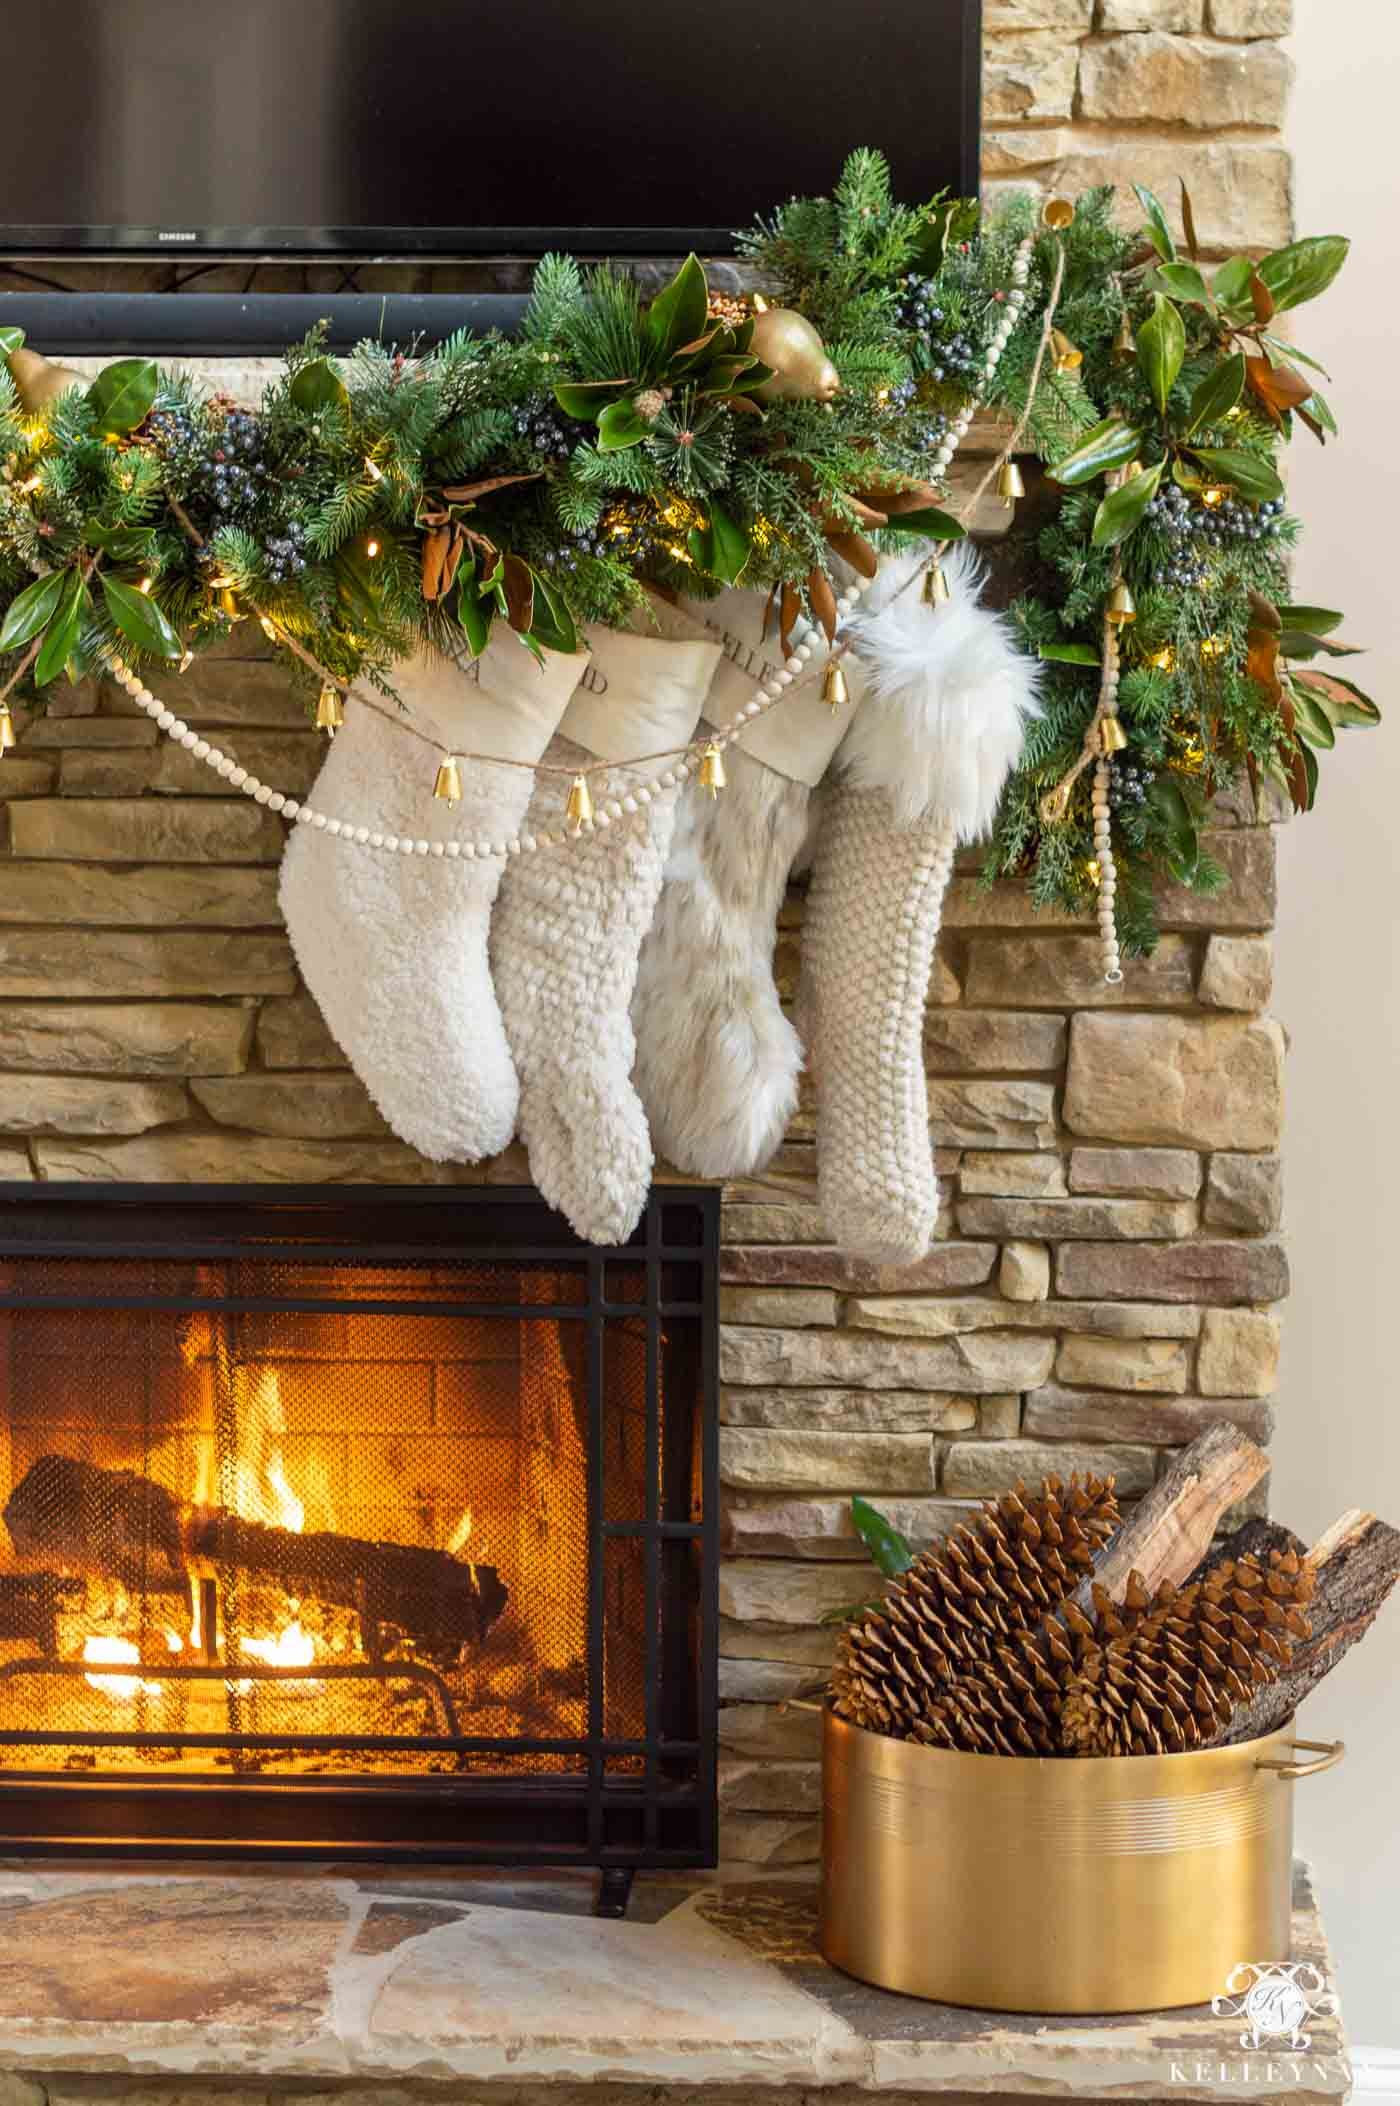 Stone Fireplace Christmas Decor and Mantel Garland with Fur Stockings